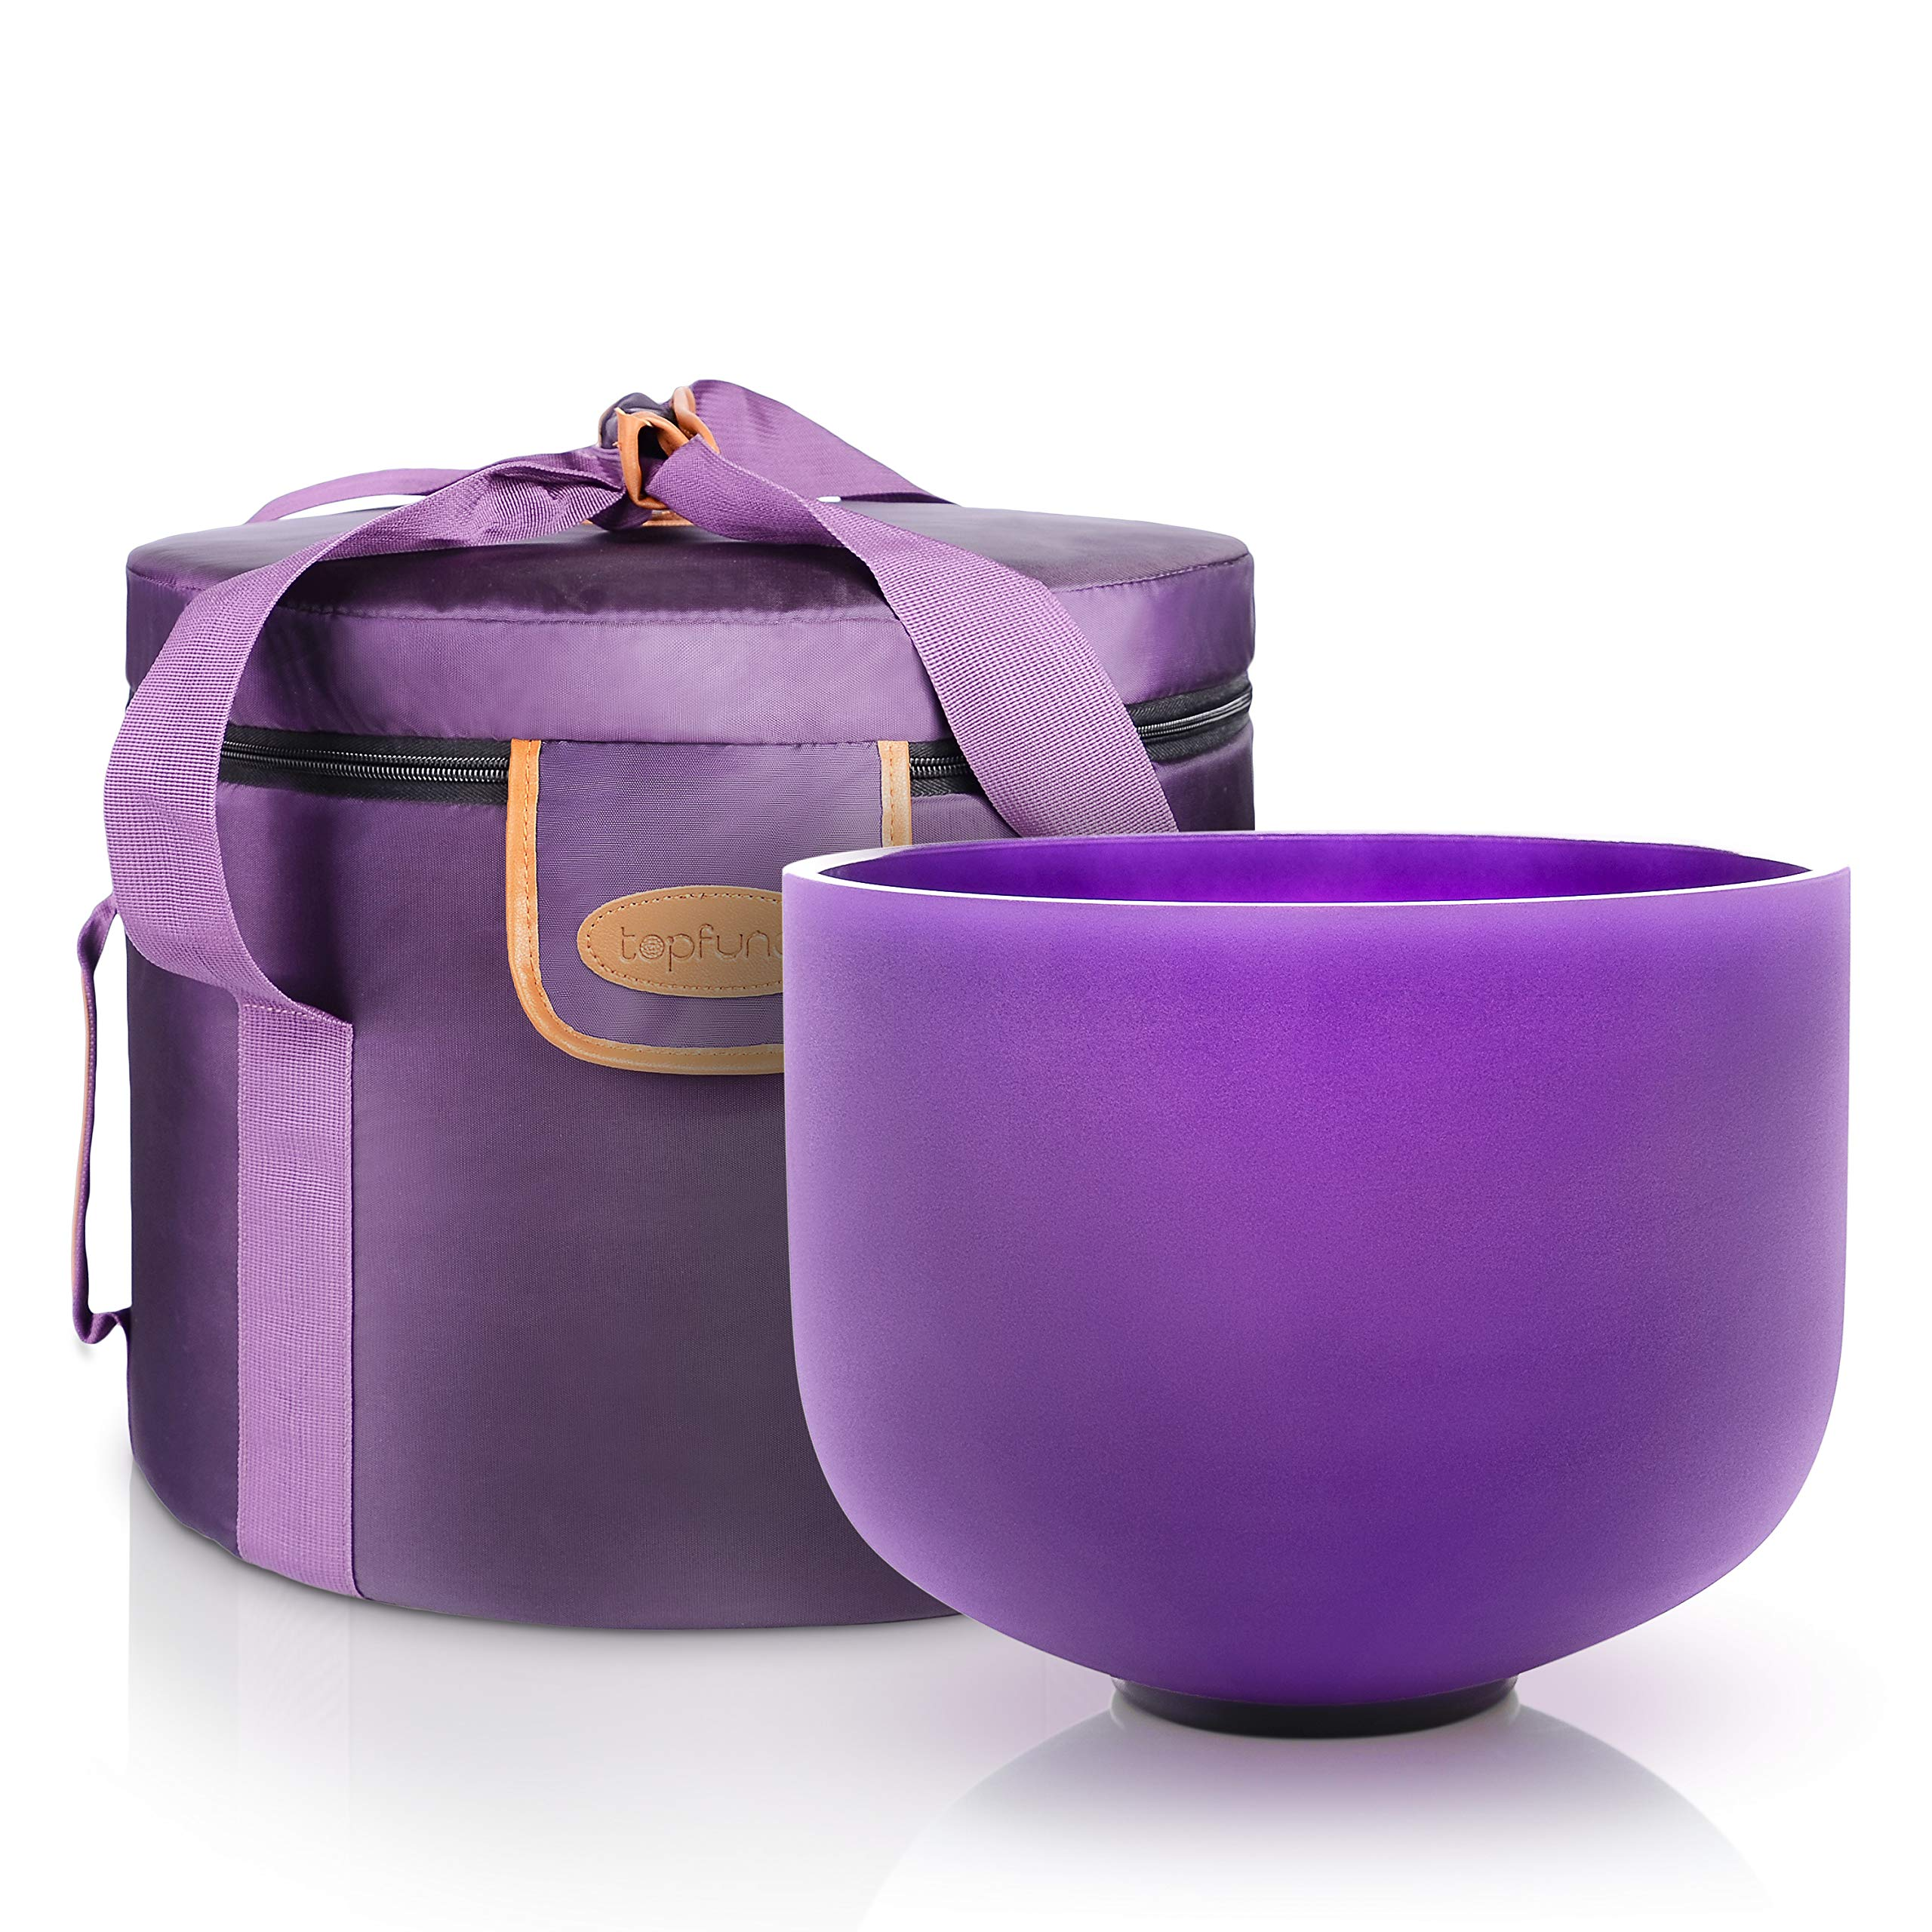 TOPFUND Purple Color B Note Crystal Singing Bowl Crown Chakra 12 inch with Heavy Duty Crystal Singing Bowl Case and Singing Bowl Mallet and O-ring